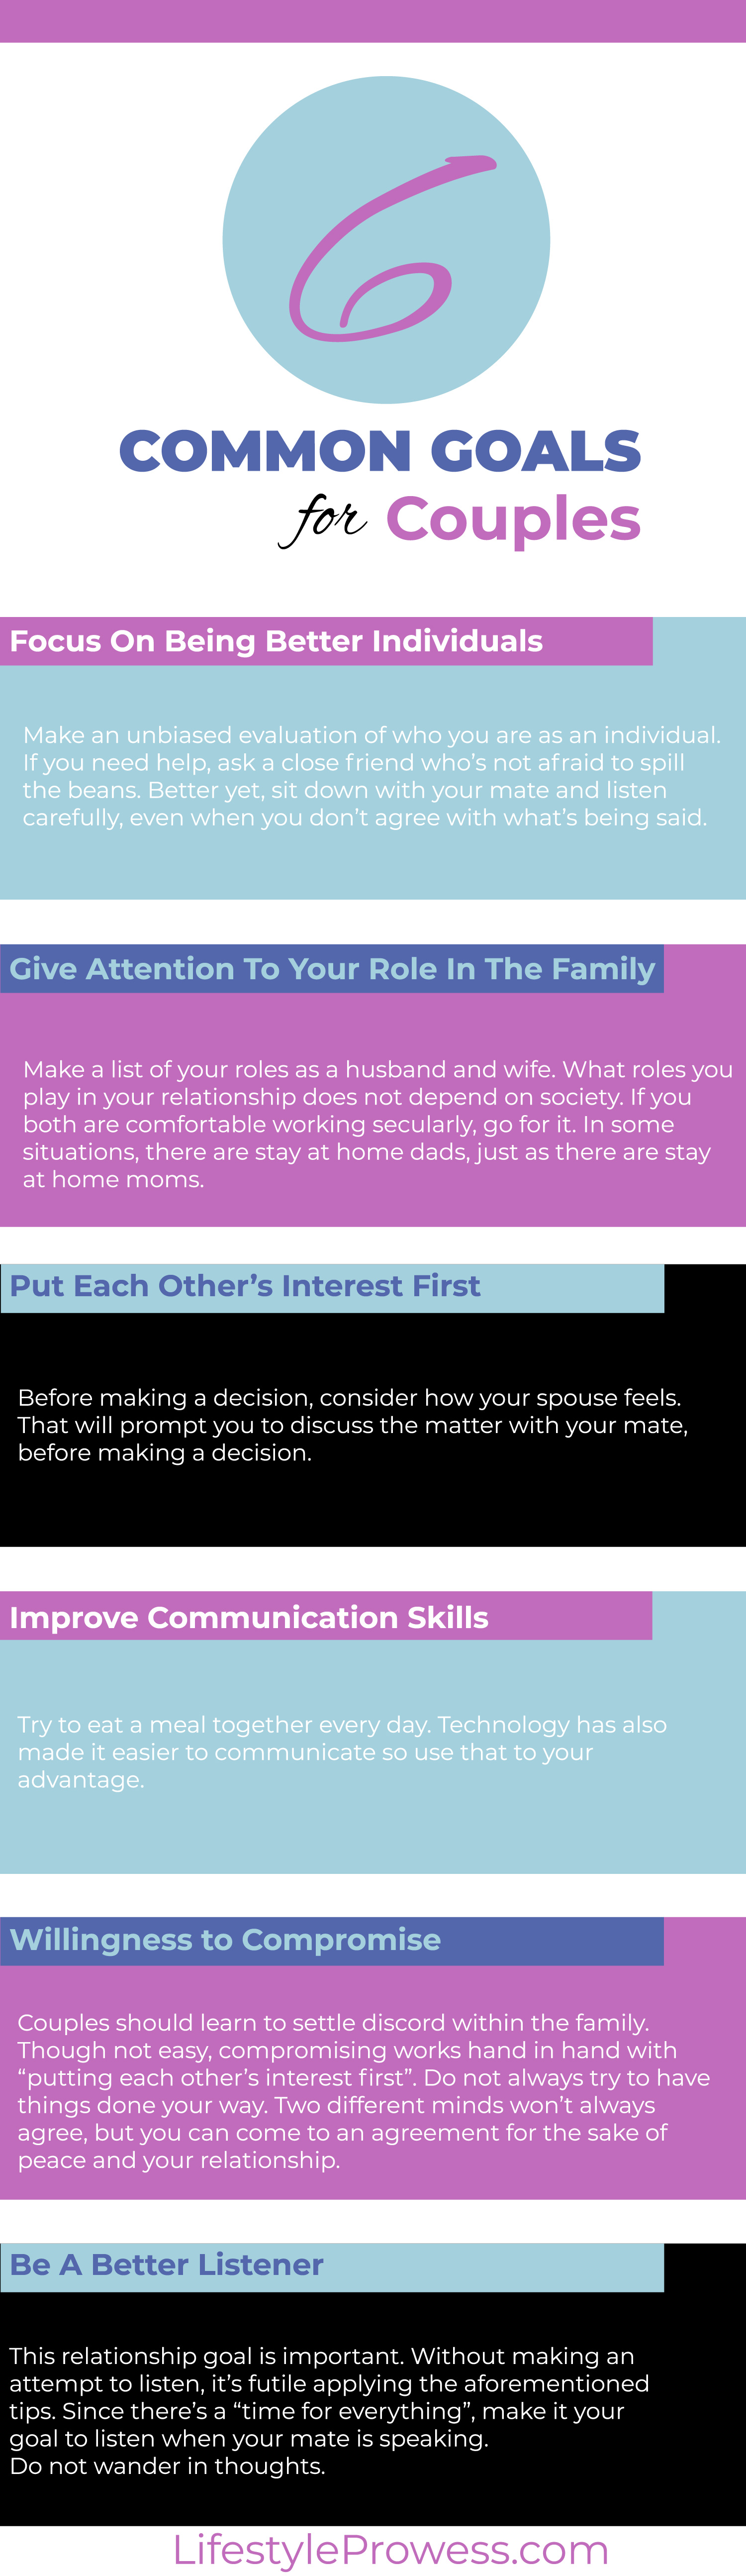 ways to improve communication skills in a relationship